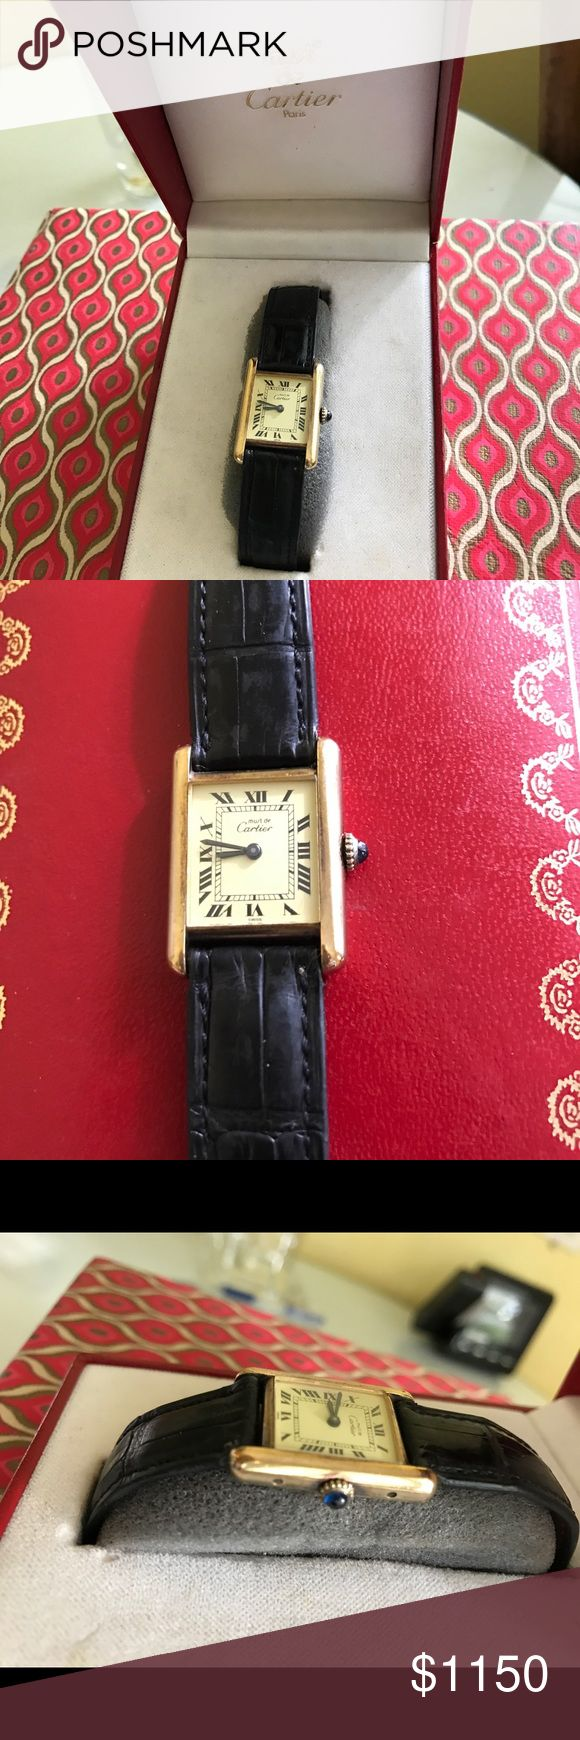 Vintage Authentic Cartier Tank Watch Ladies' 18K yellow gold plated sterling silver Cartier Tank Must de Cartier Watch with smooth bezel, black Roman numeral hour markers, blue-steeled sword hands, brown leather strap and 18K yellow gold-plated stainless steel tang buckle closure. Comes with its Cartier box and I Purchased the Cartier alligator strap several years ago for $250. Cartier Accessories Watches